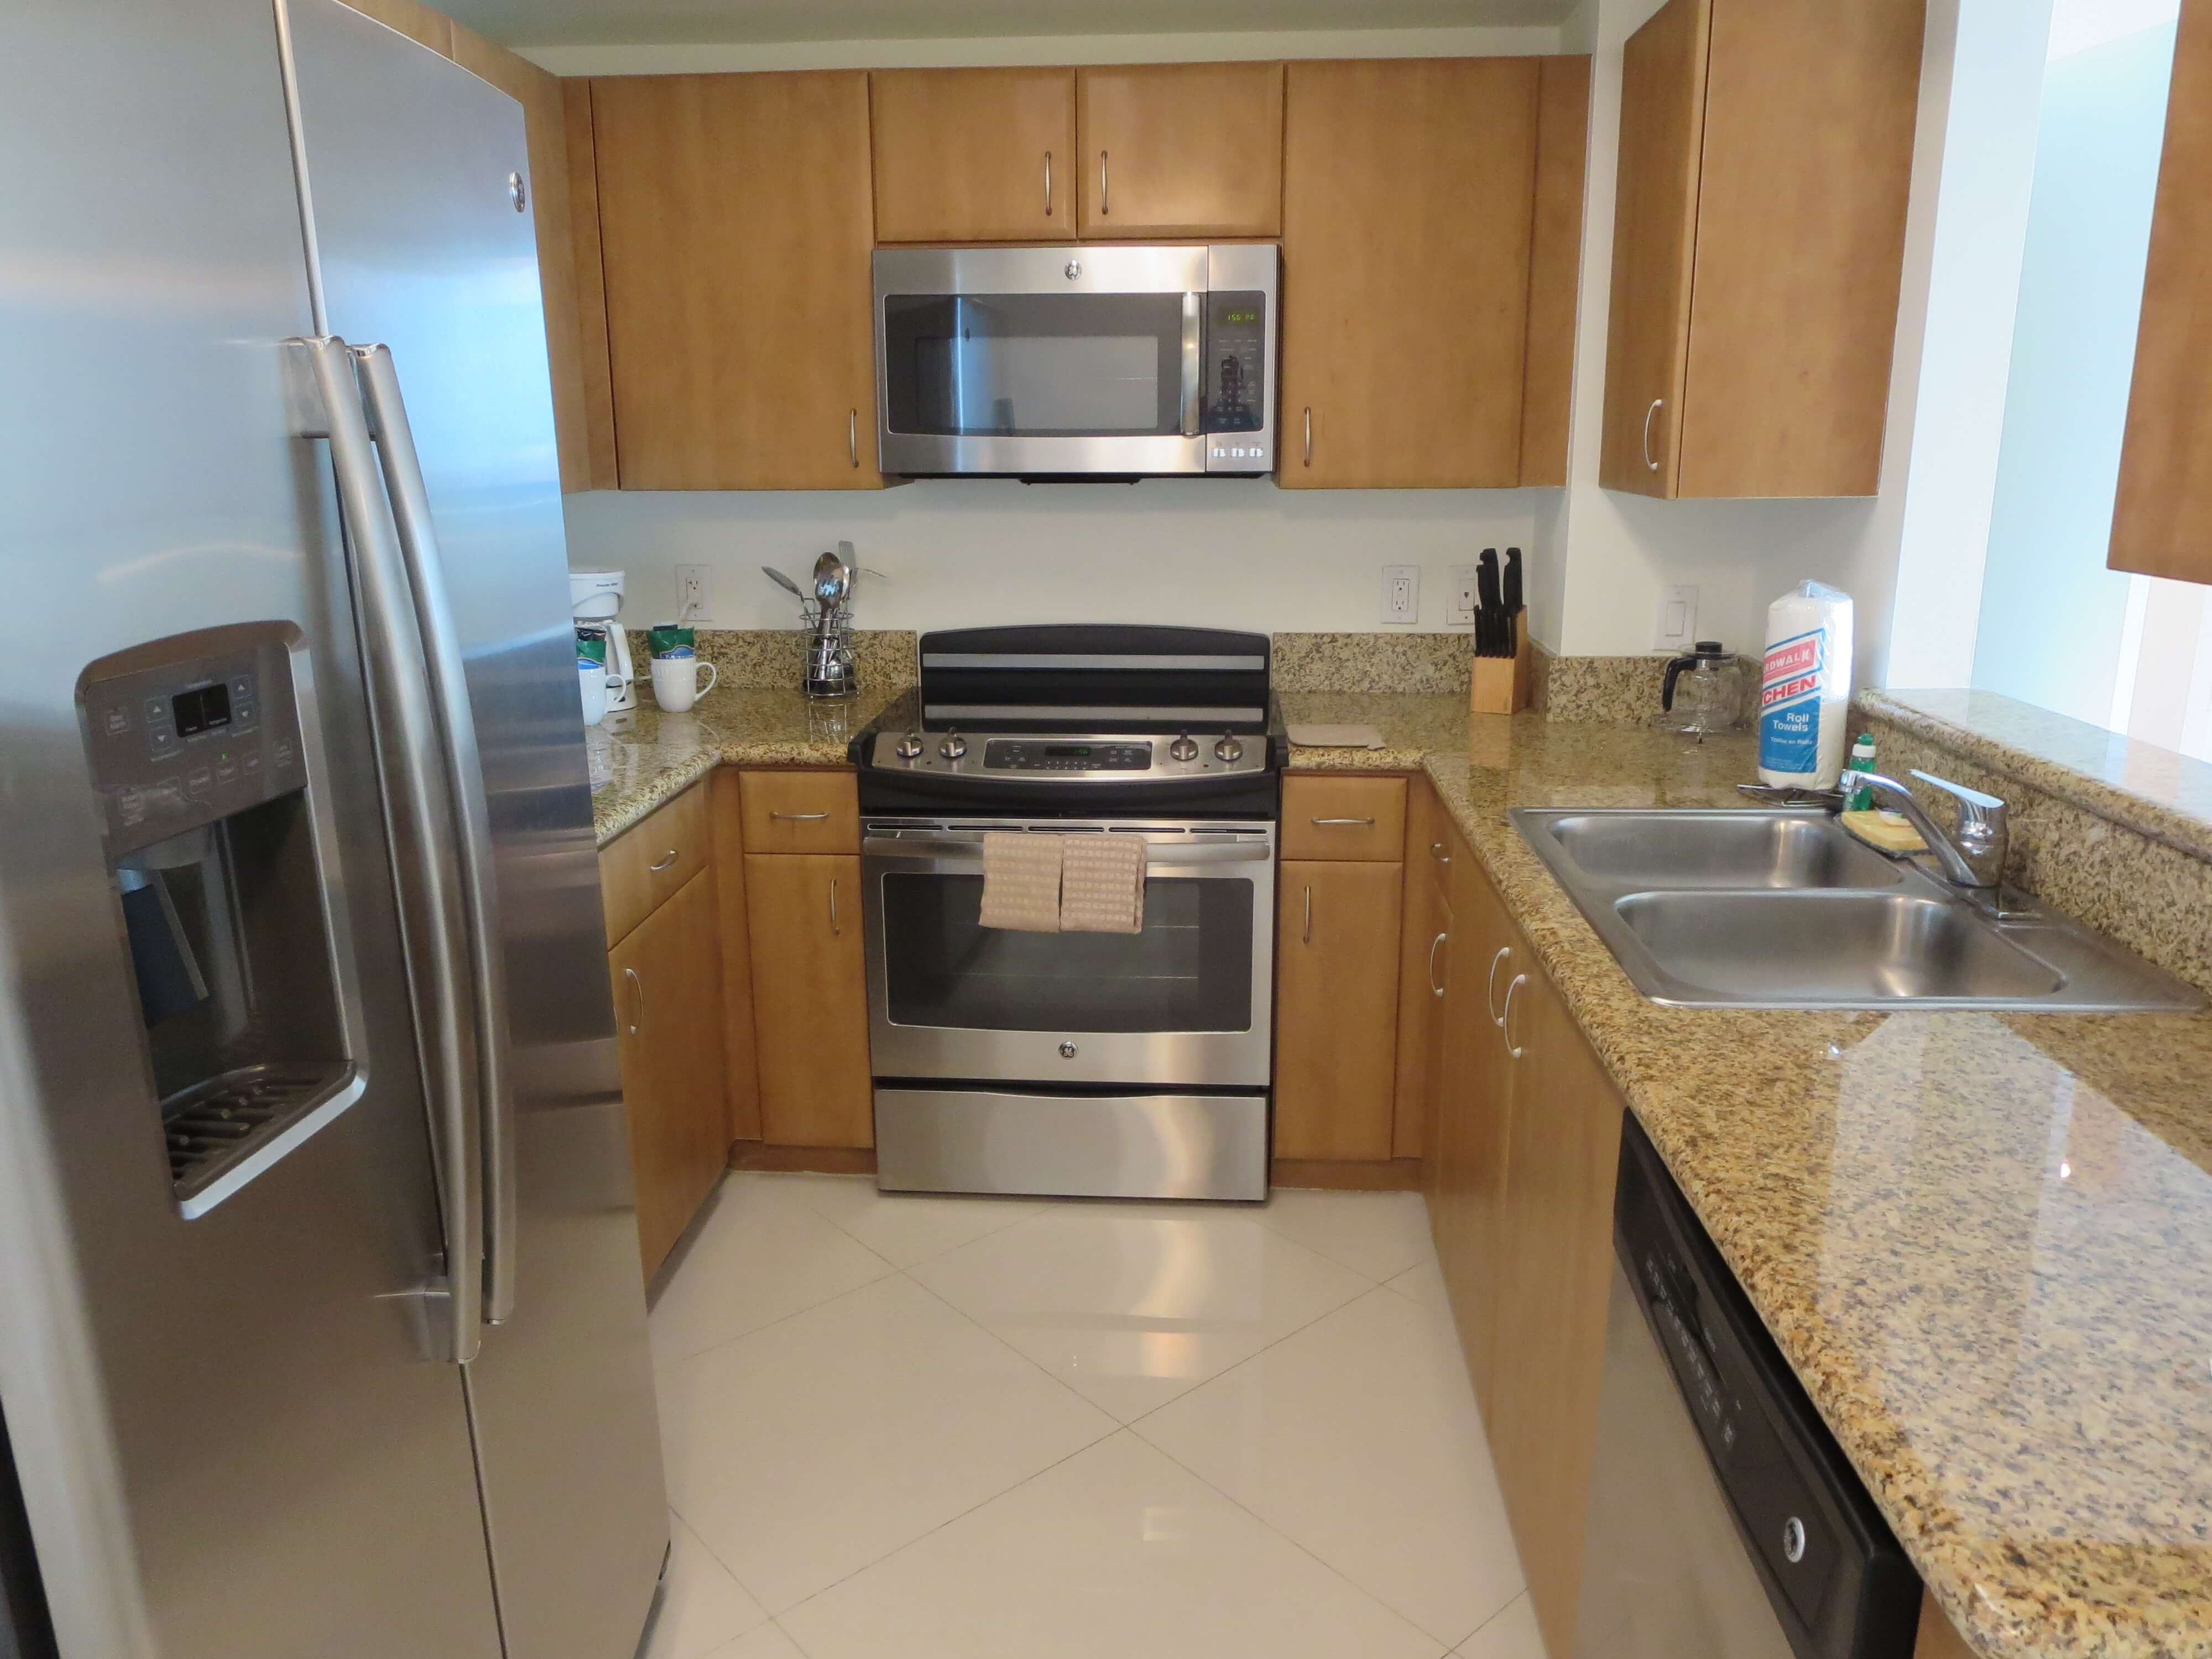 1 Bedroom Apartments For Rent In Miami Lakes 28 Images Miami Lakes Furnished 1 Bedroom